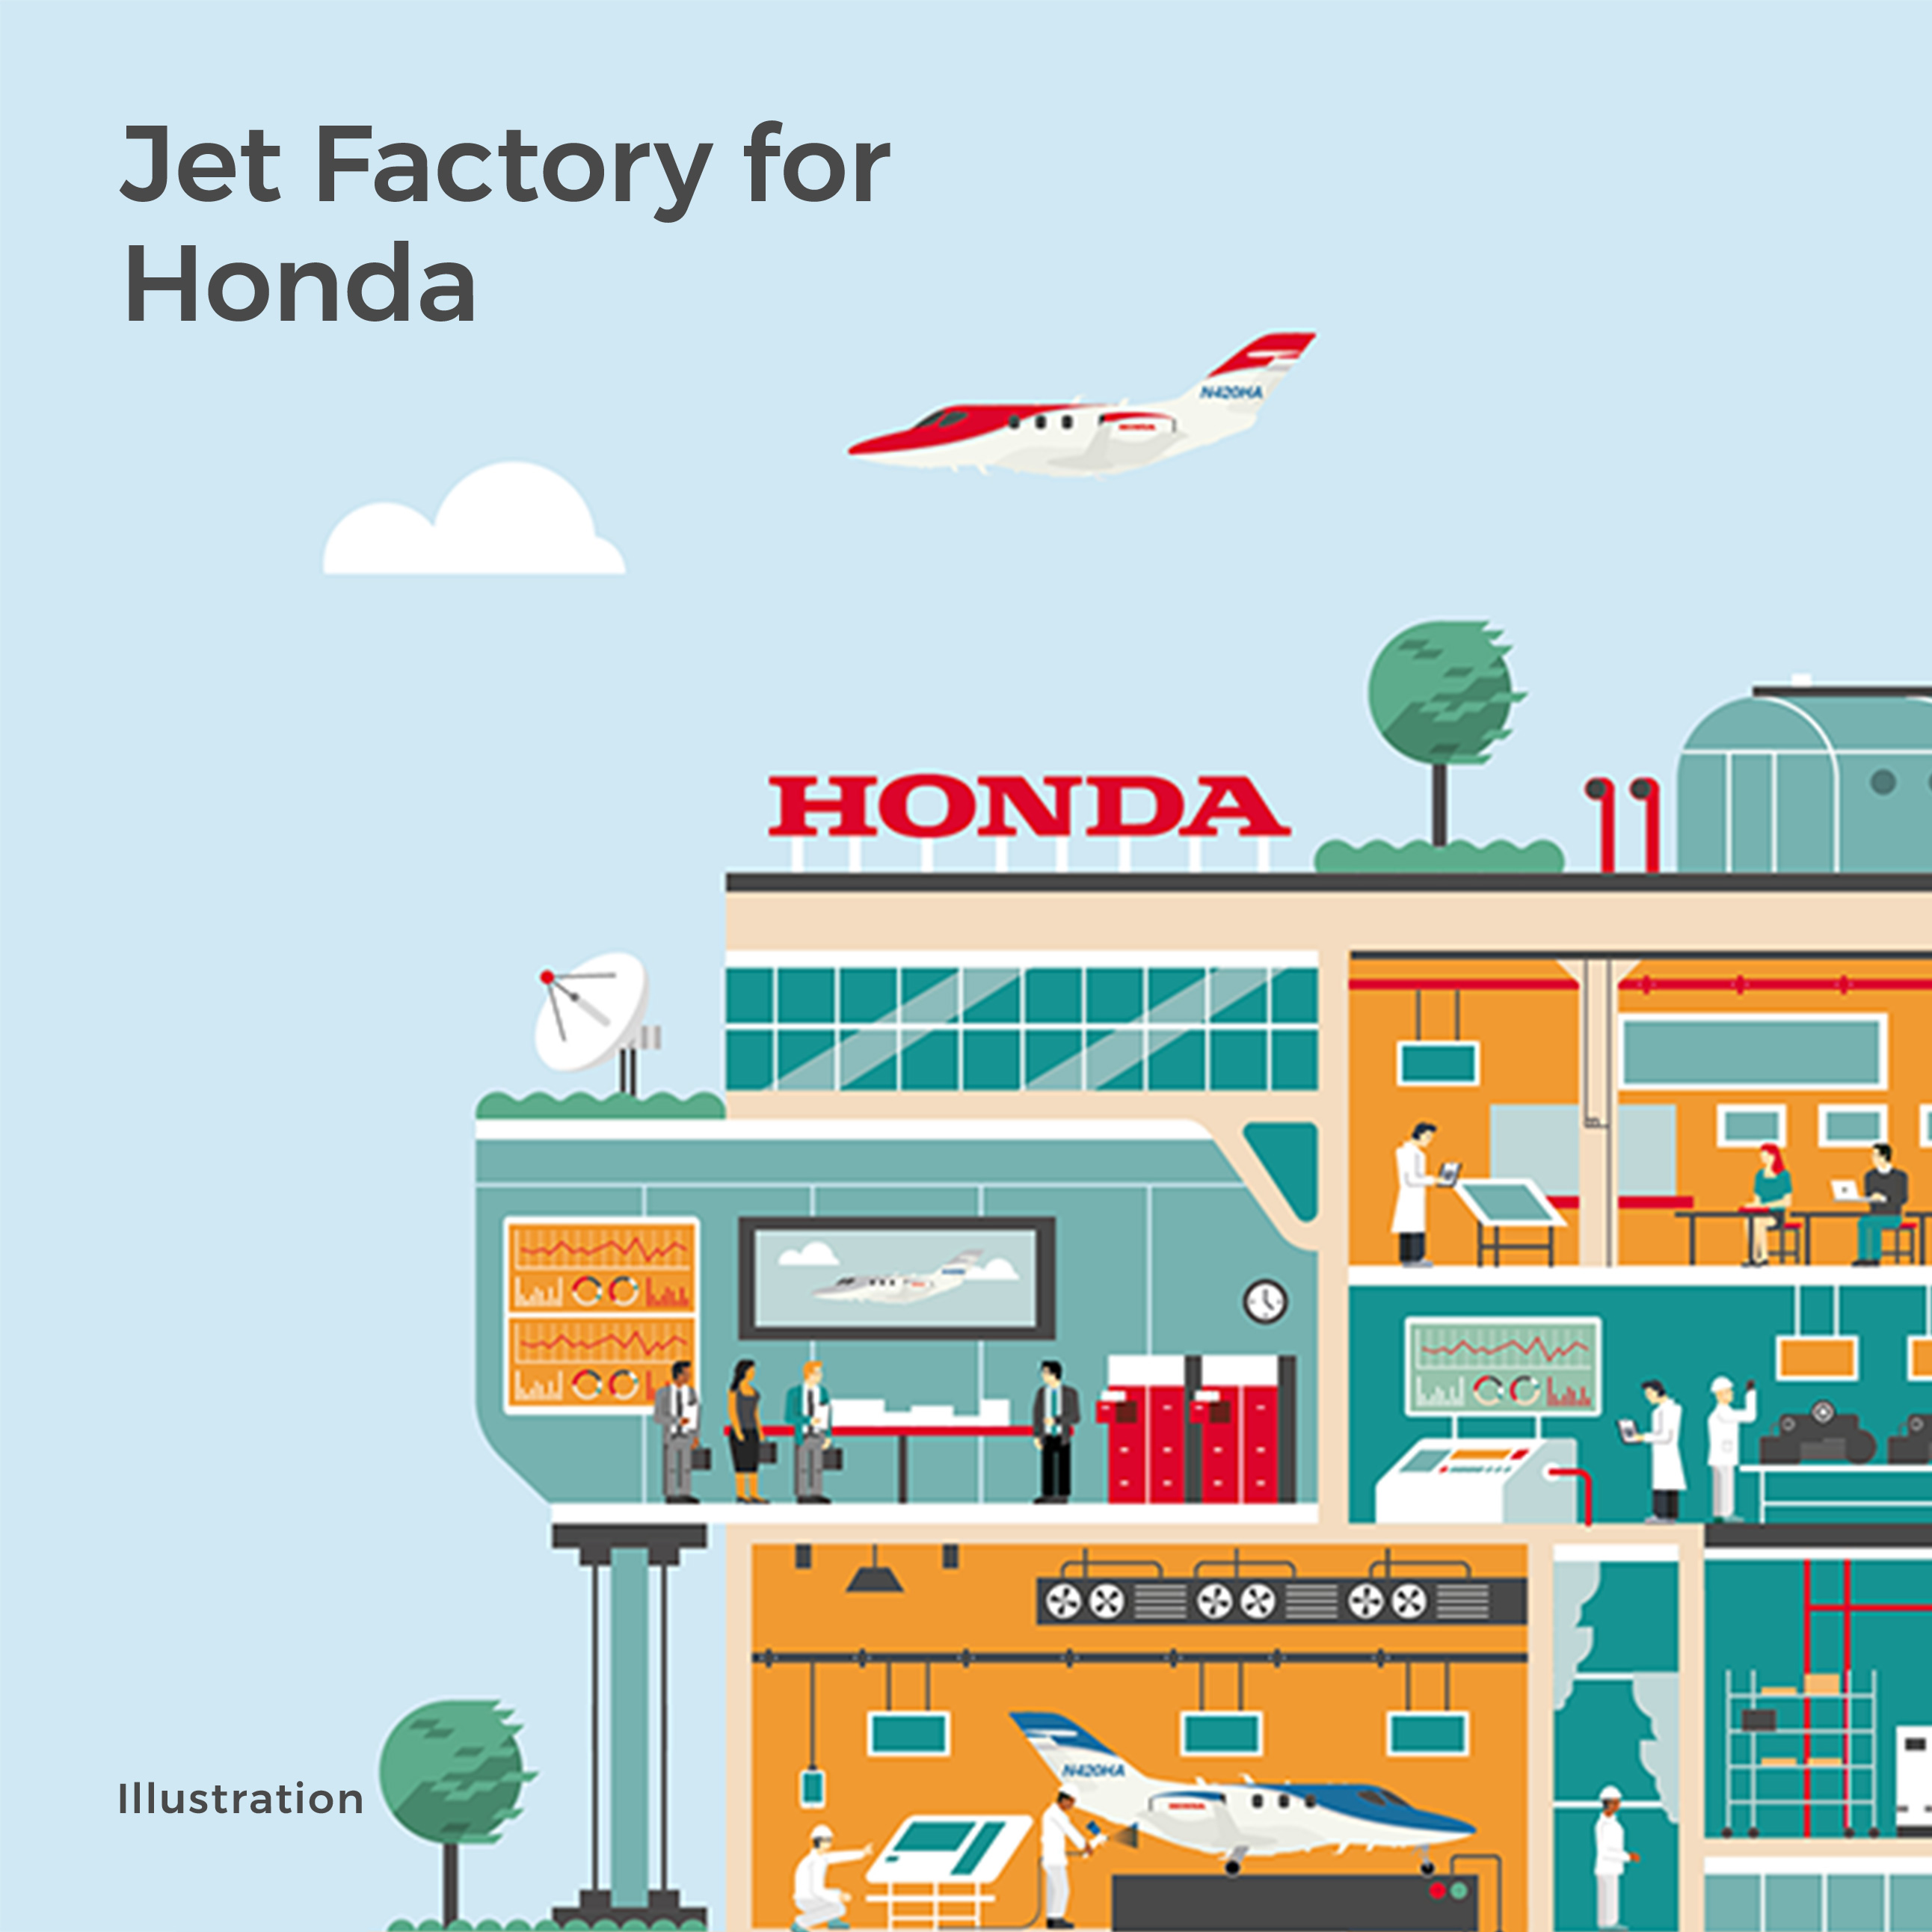 Jet Factory for Honda